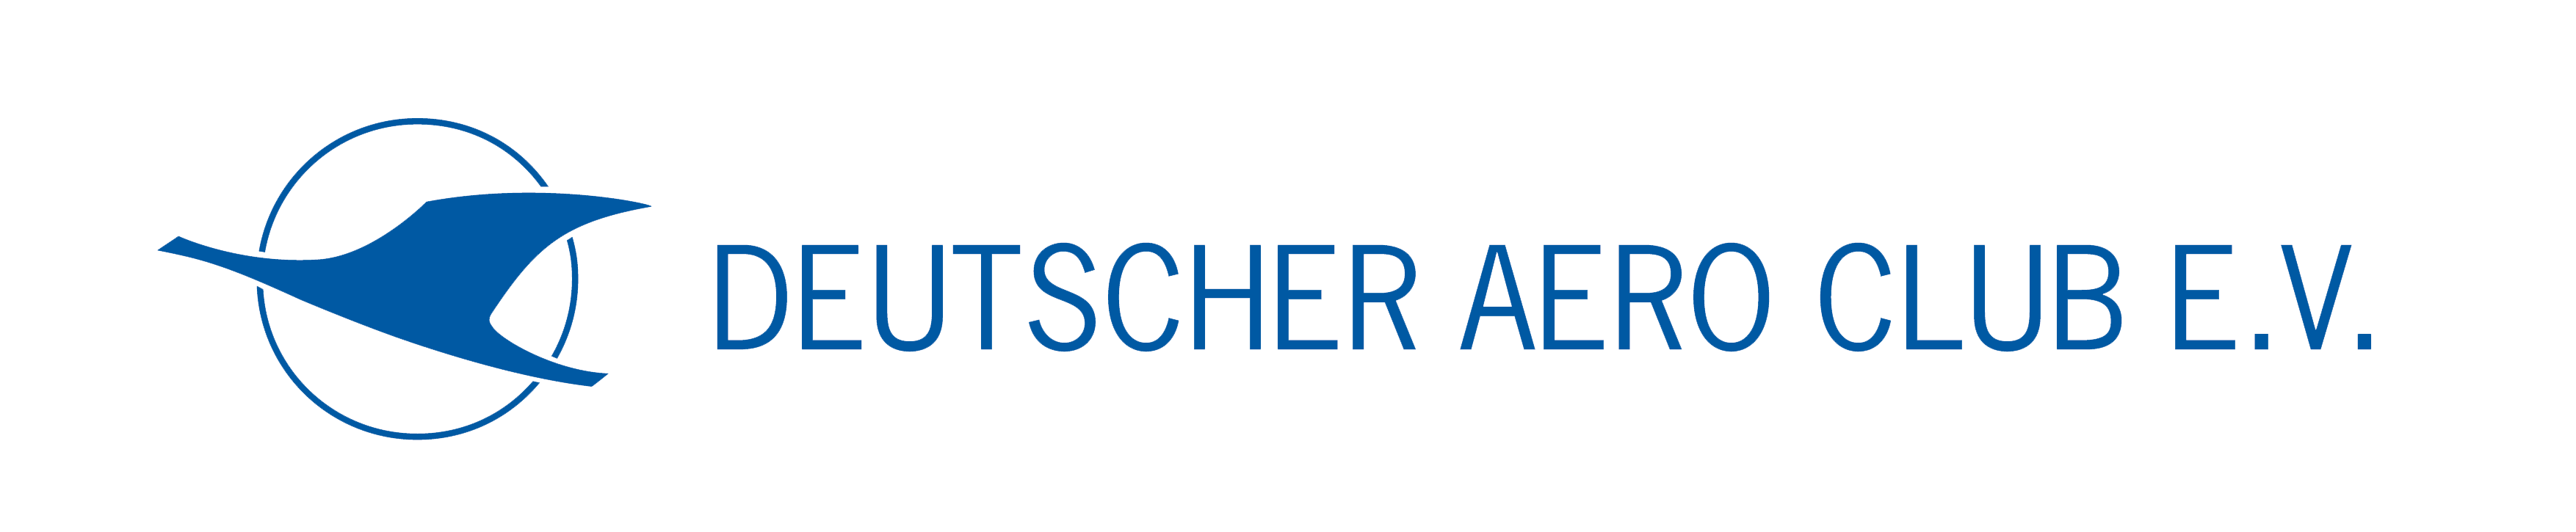 Deutscher Aero Club e.V.